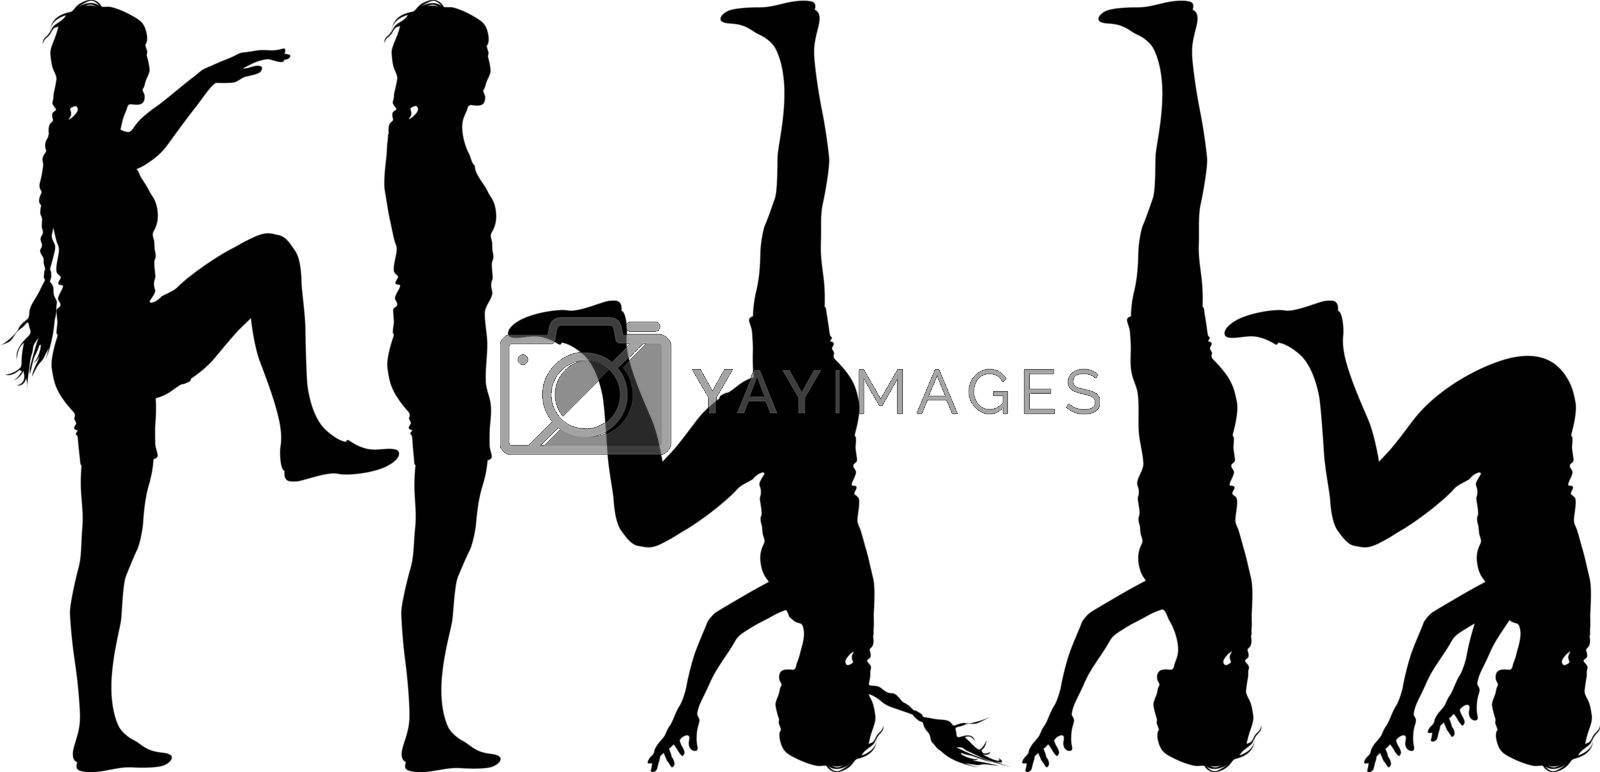 Black silhouette  woman in yoga pose on white background. Vector illustration.